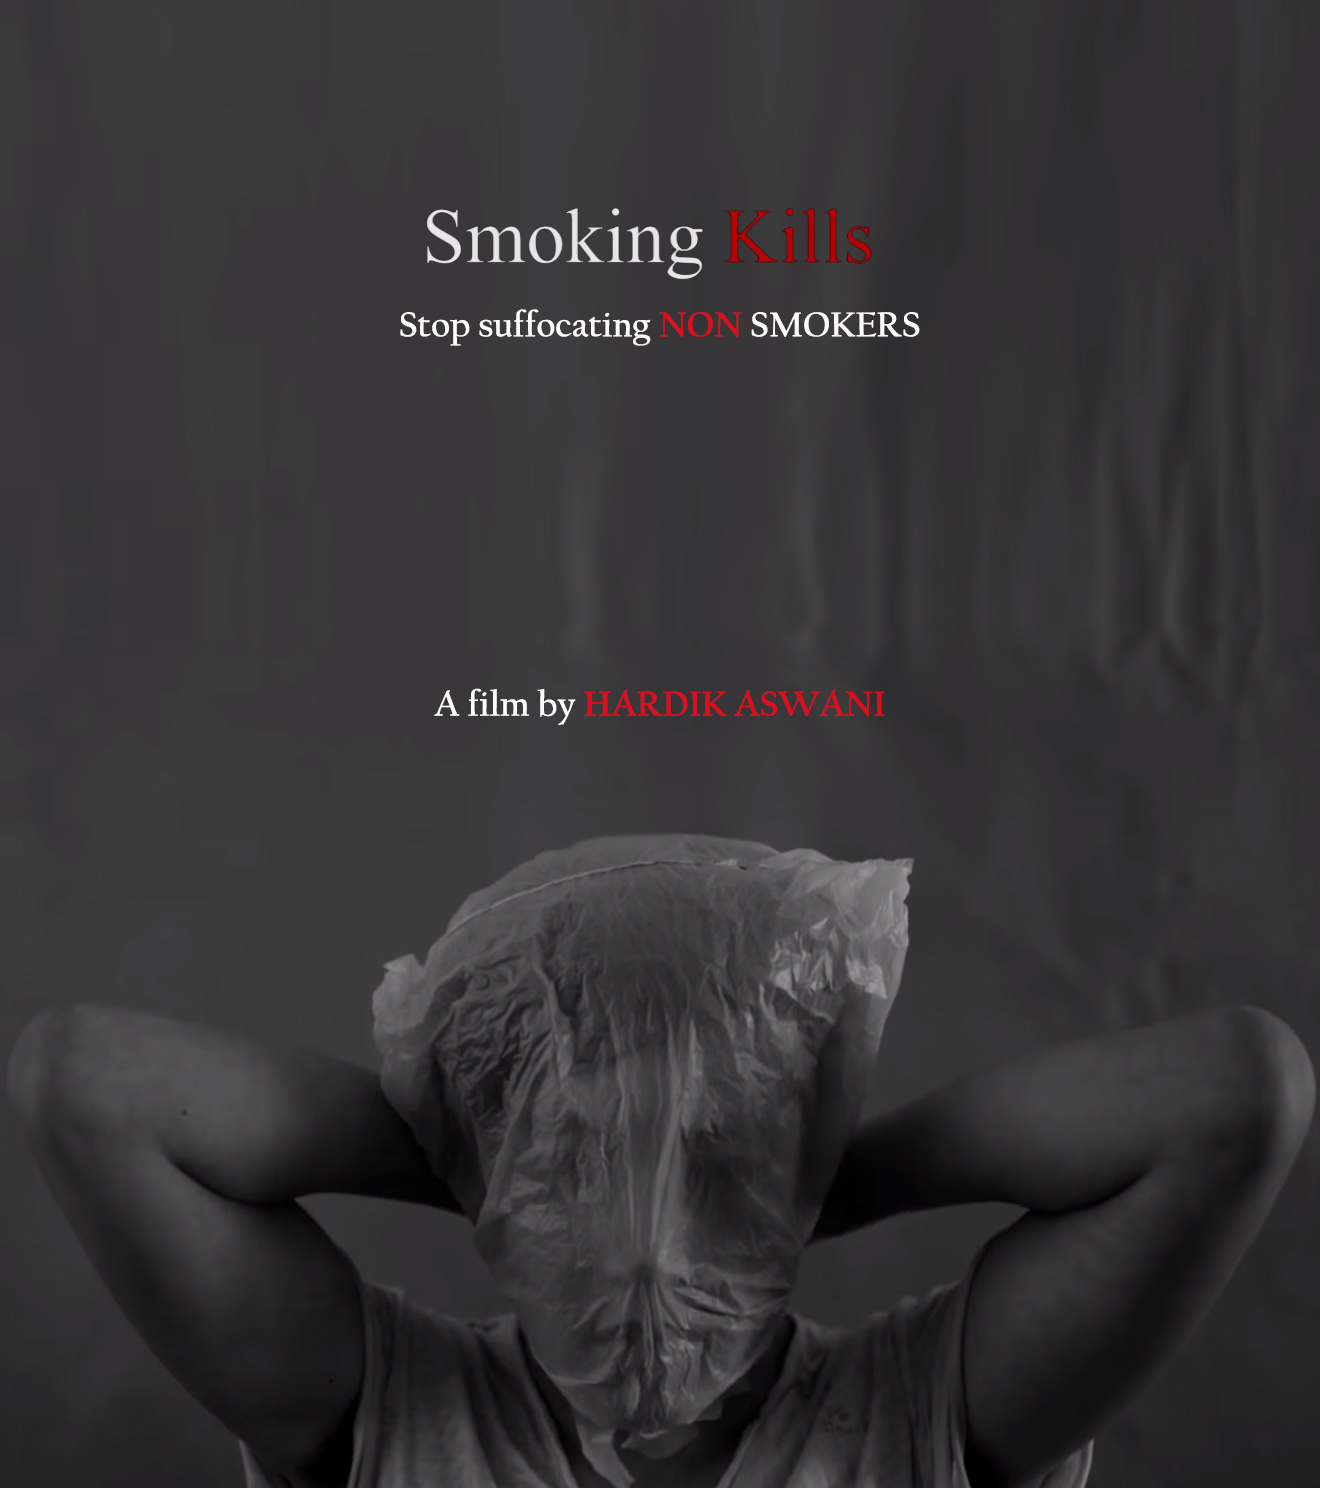 Stop Smoking Commercial (Video 2017) - IMDb